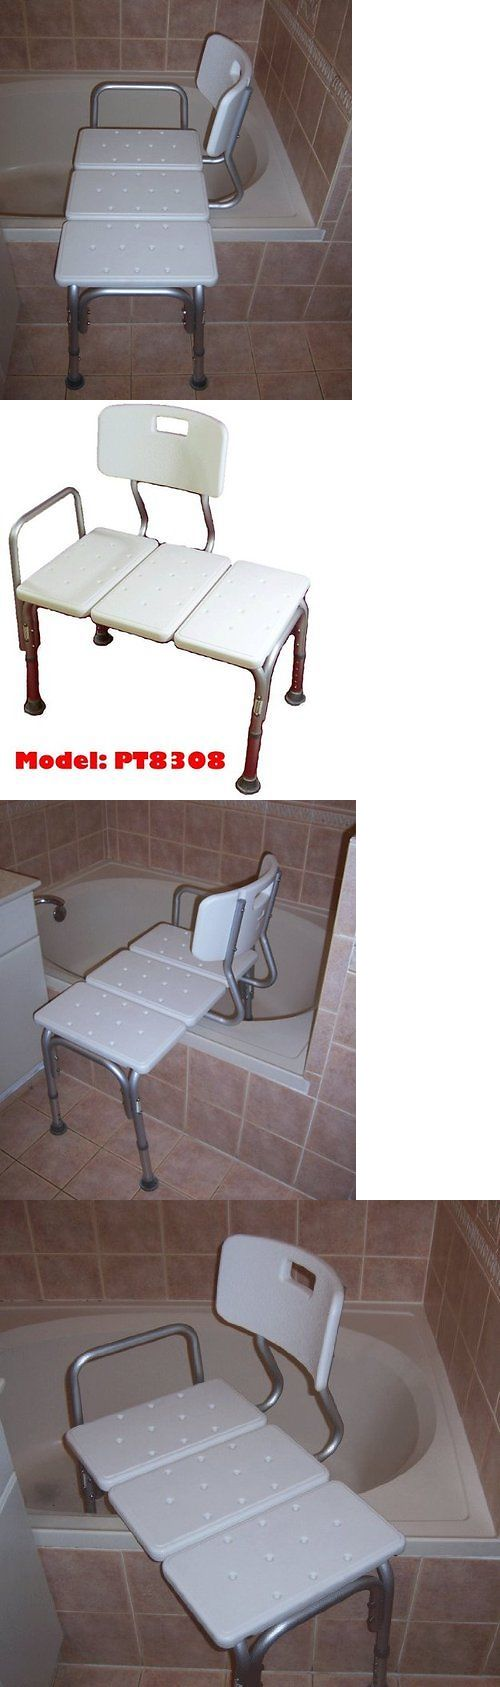 Transfer Boards and Benches: Shower Chairs For Elderly Medical Disabled Handicapped Bath Bathtub Seat Bench -> BUY IT NOW ONLY: $85.39 on eBay!